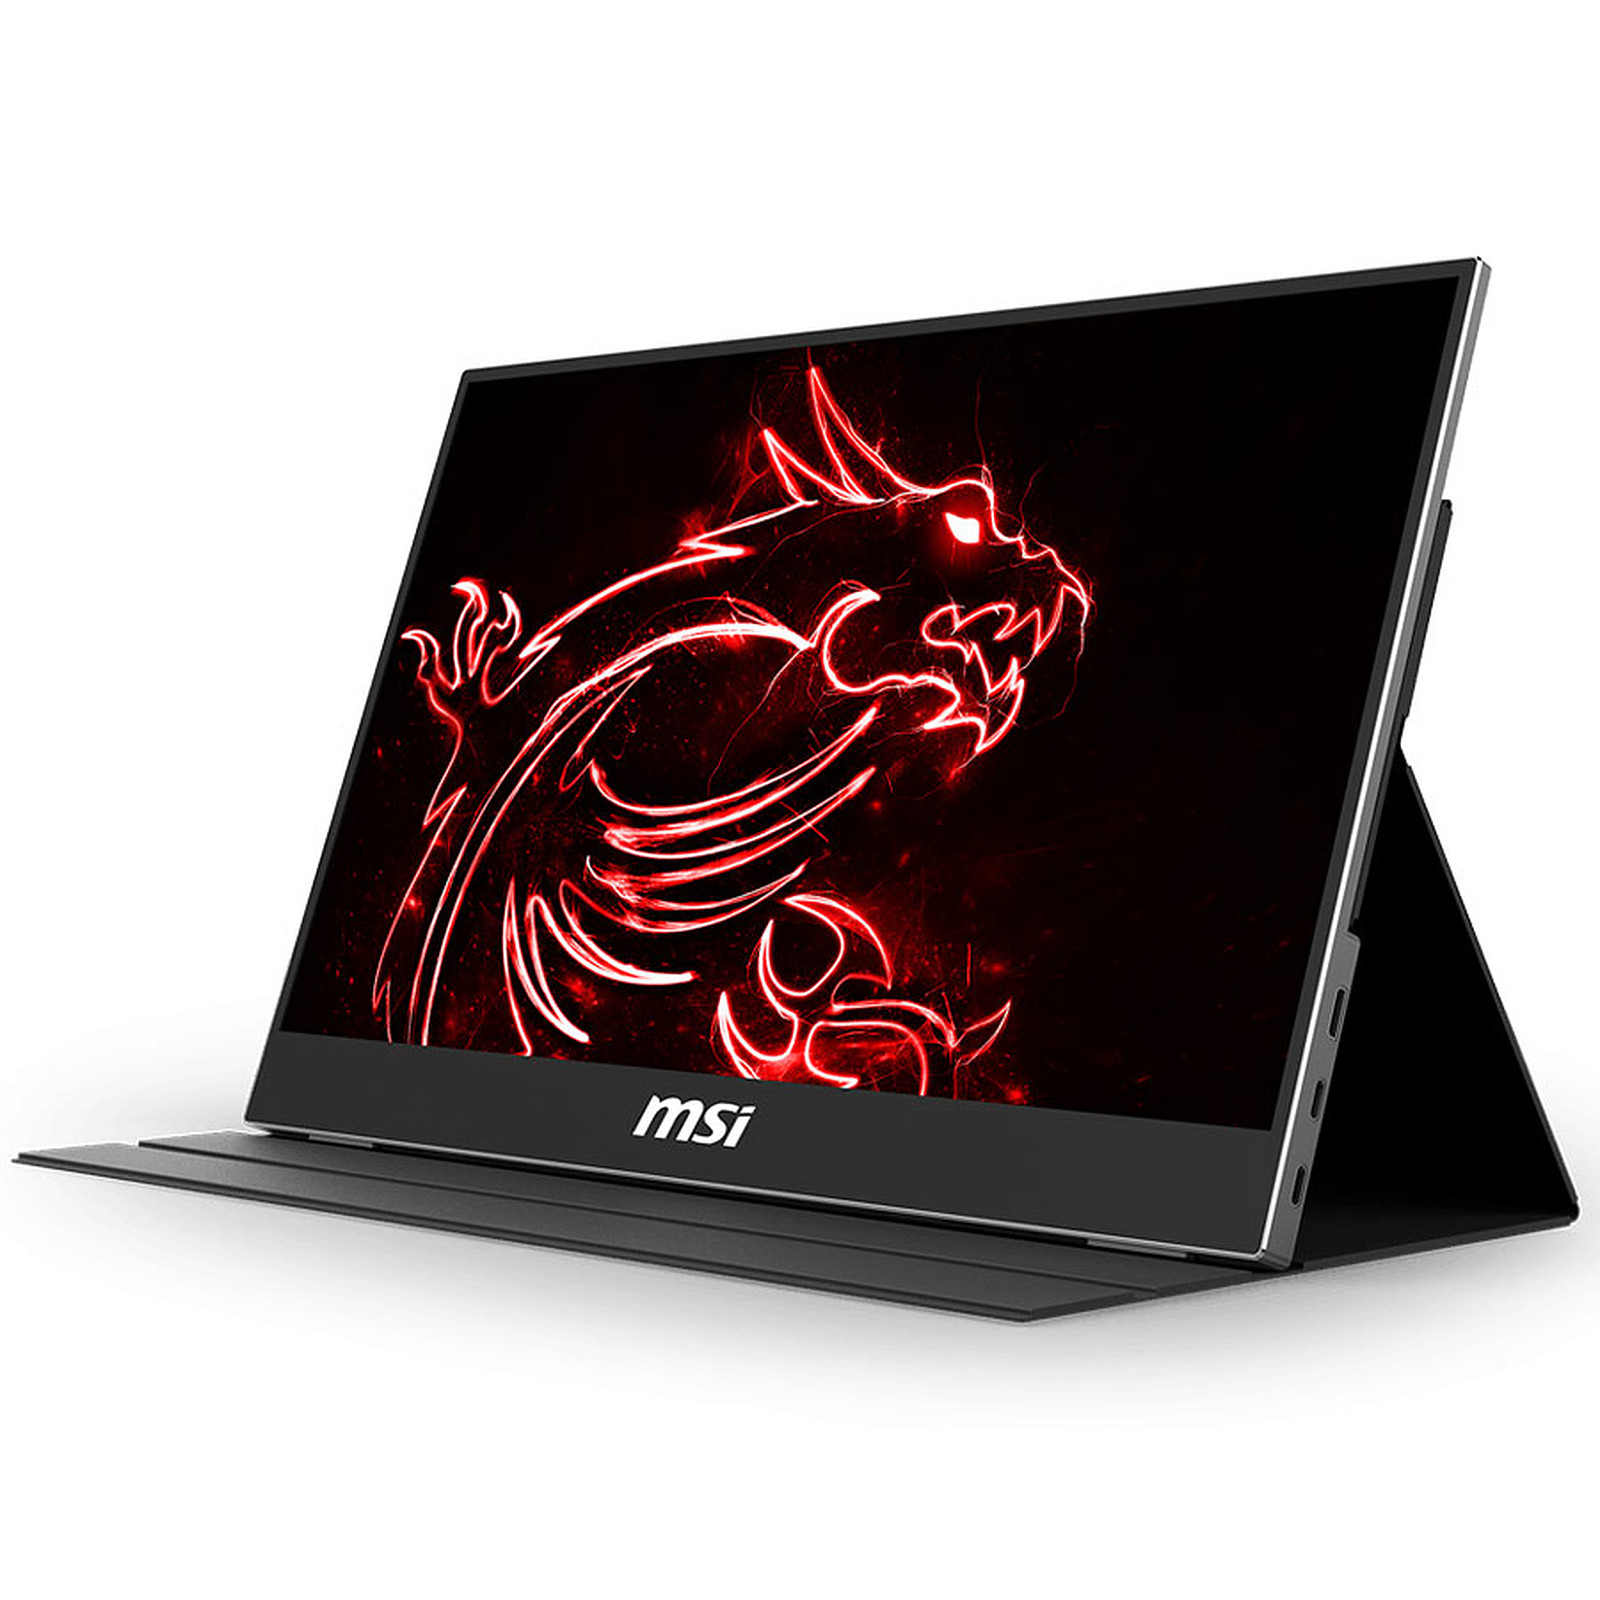 "MSI 15.6"" LED - Optix MAG161V"